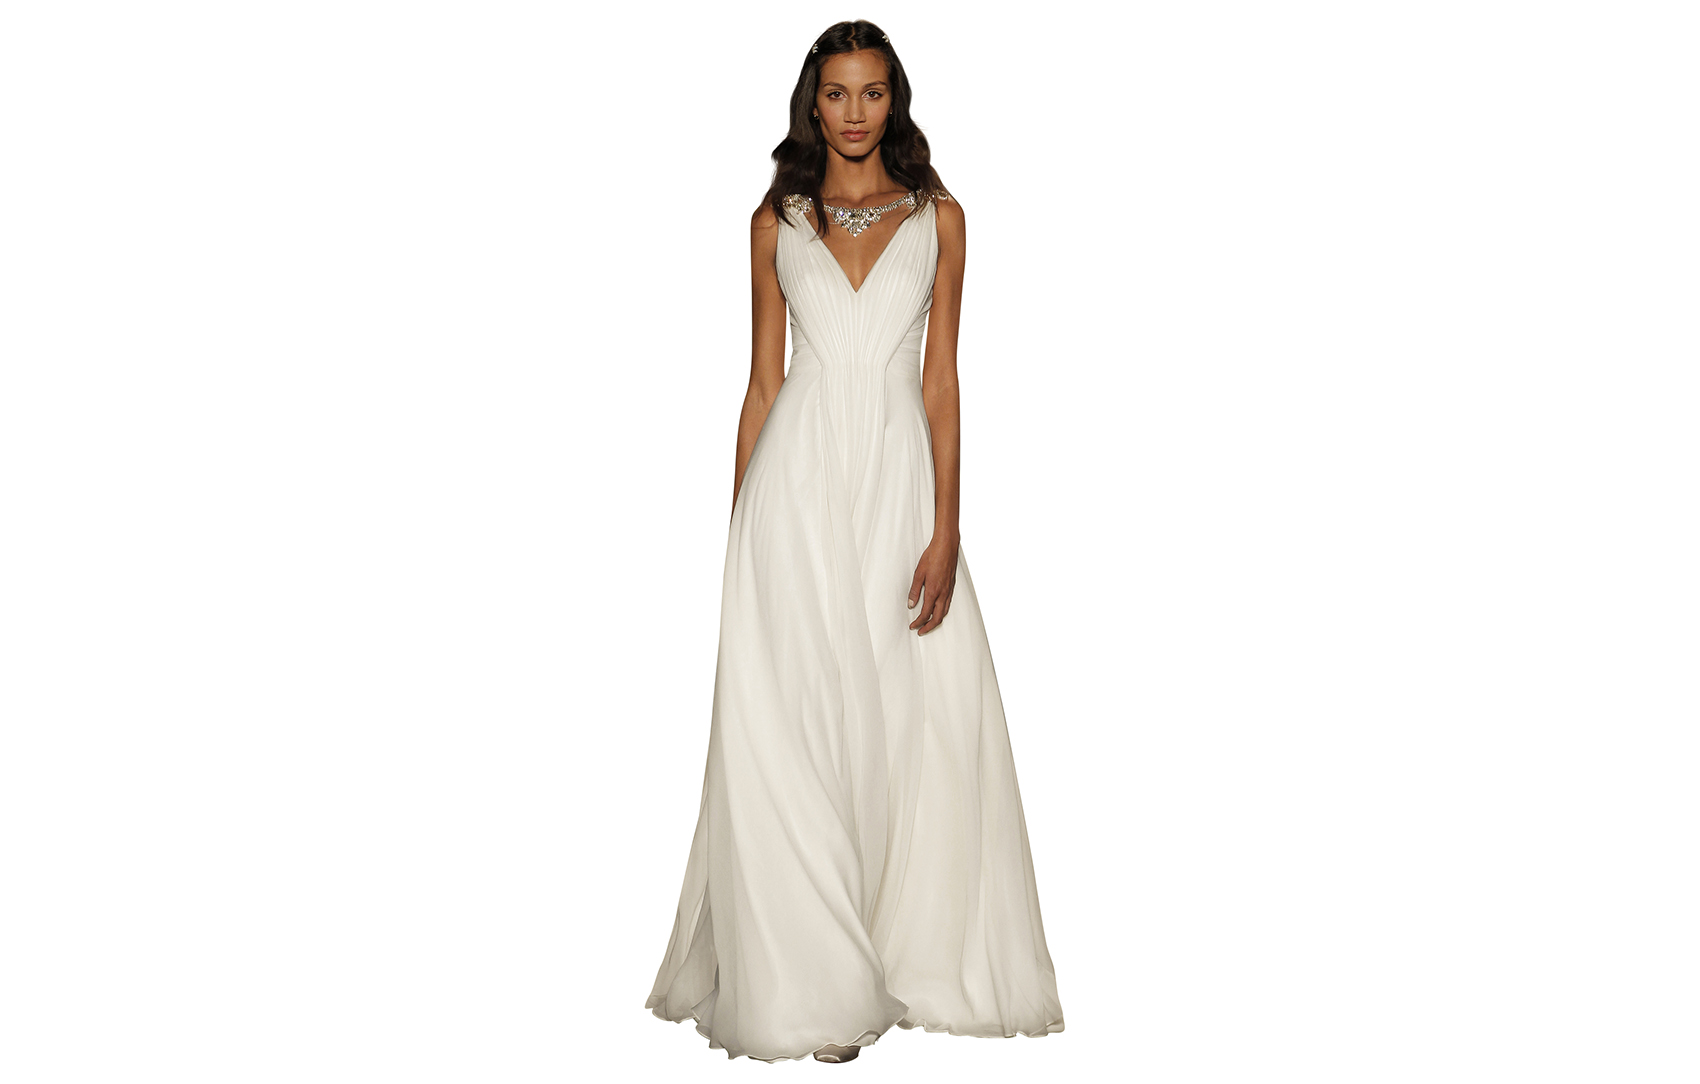 Jenny Packham bridal gown empire waist